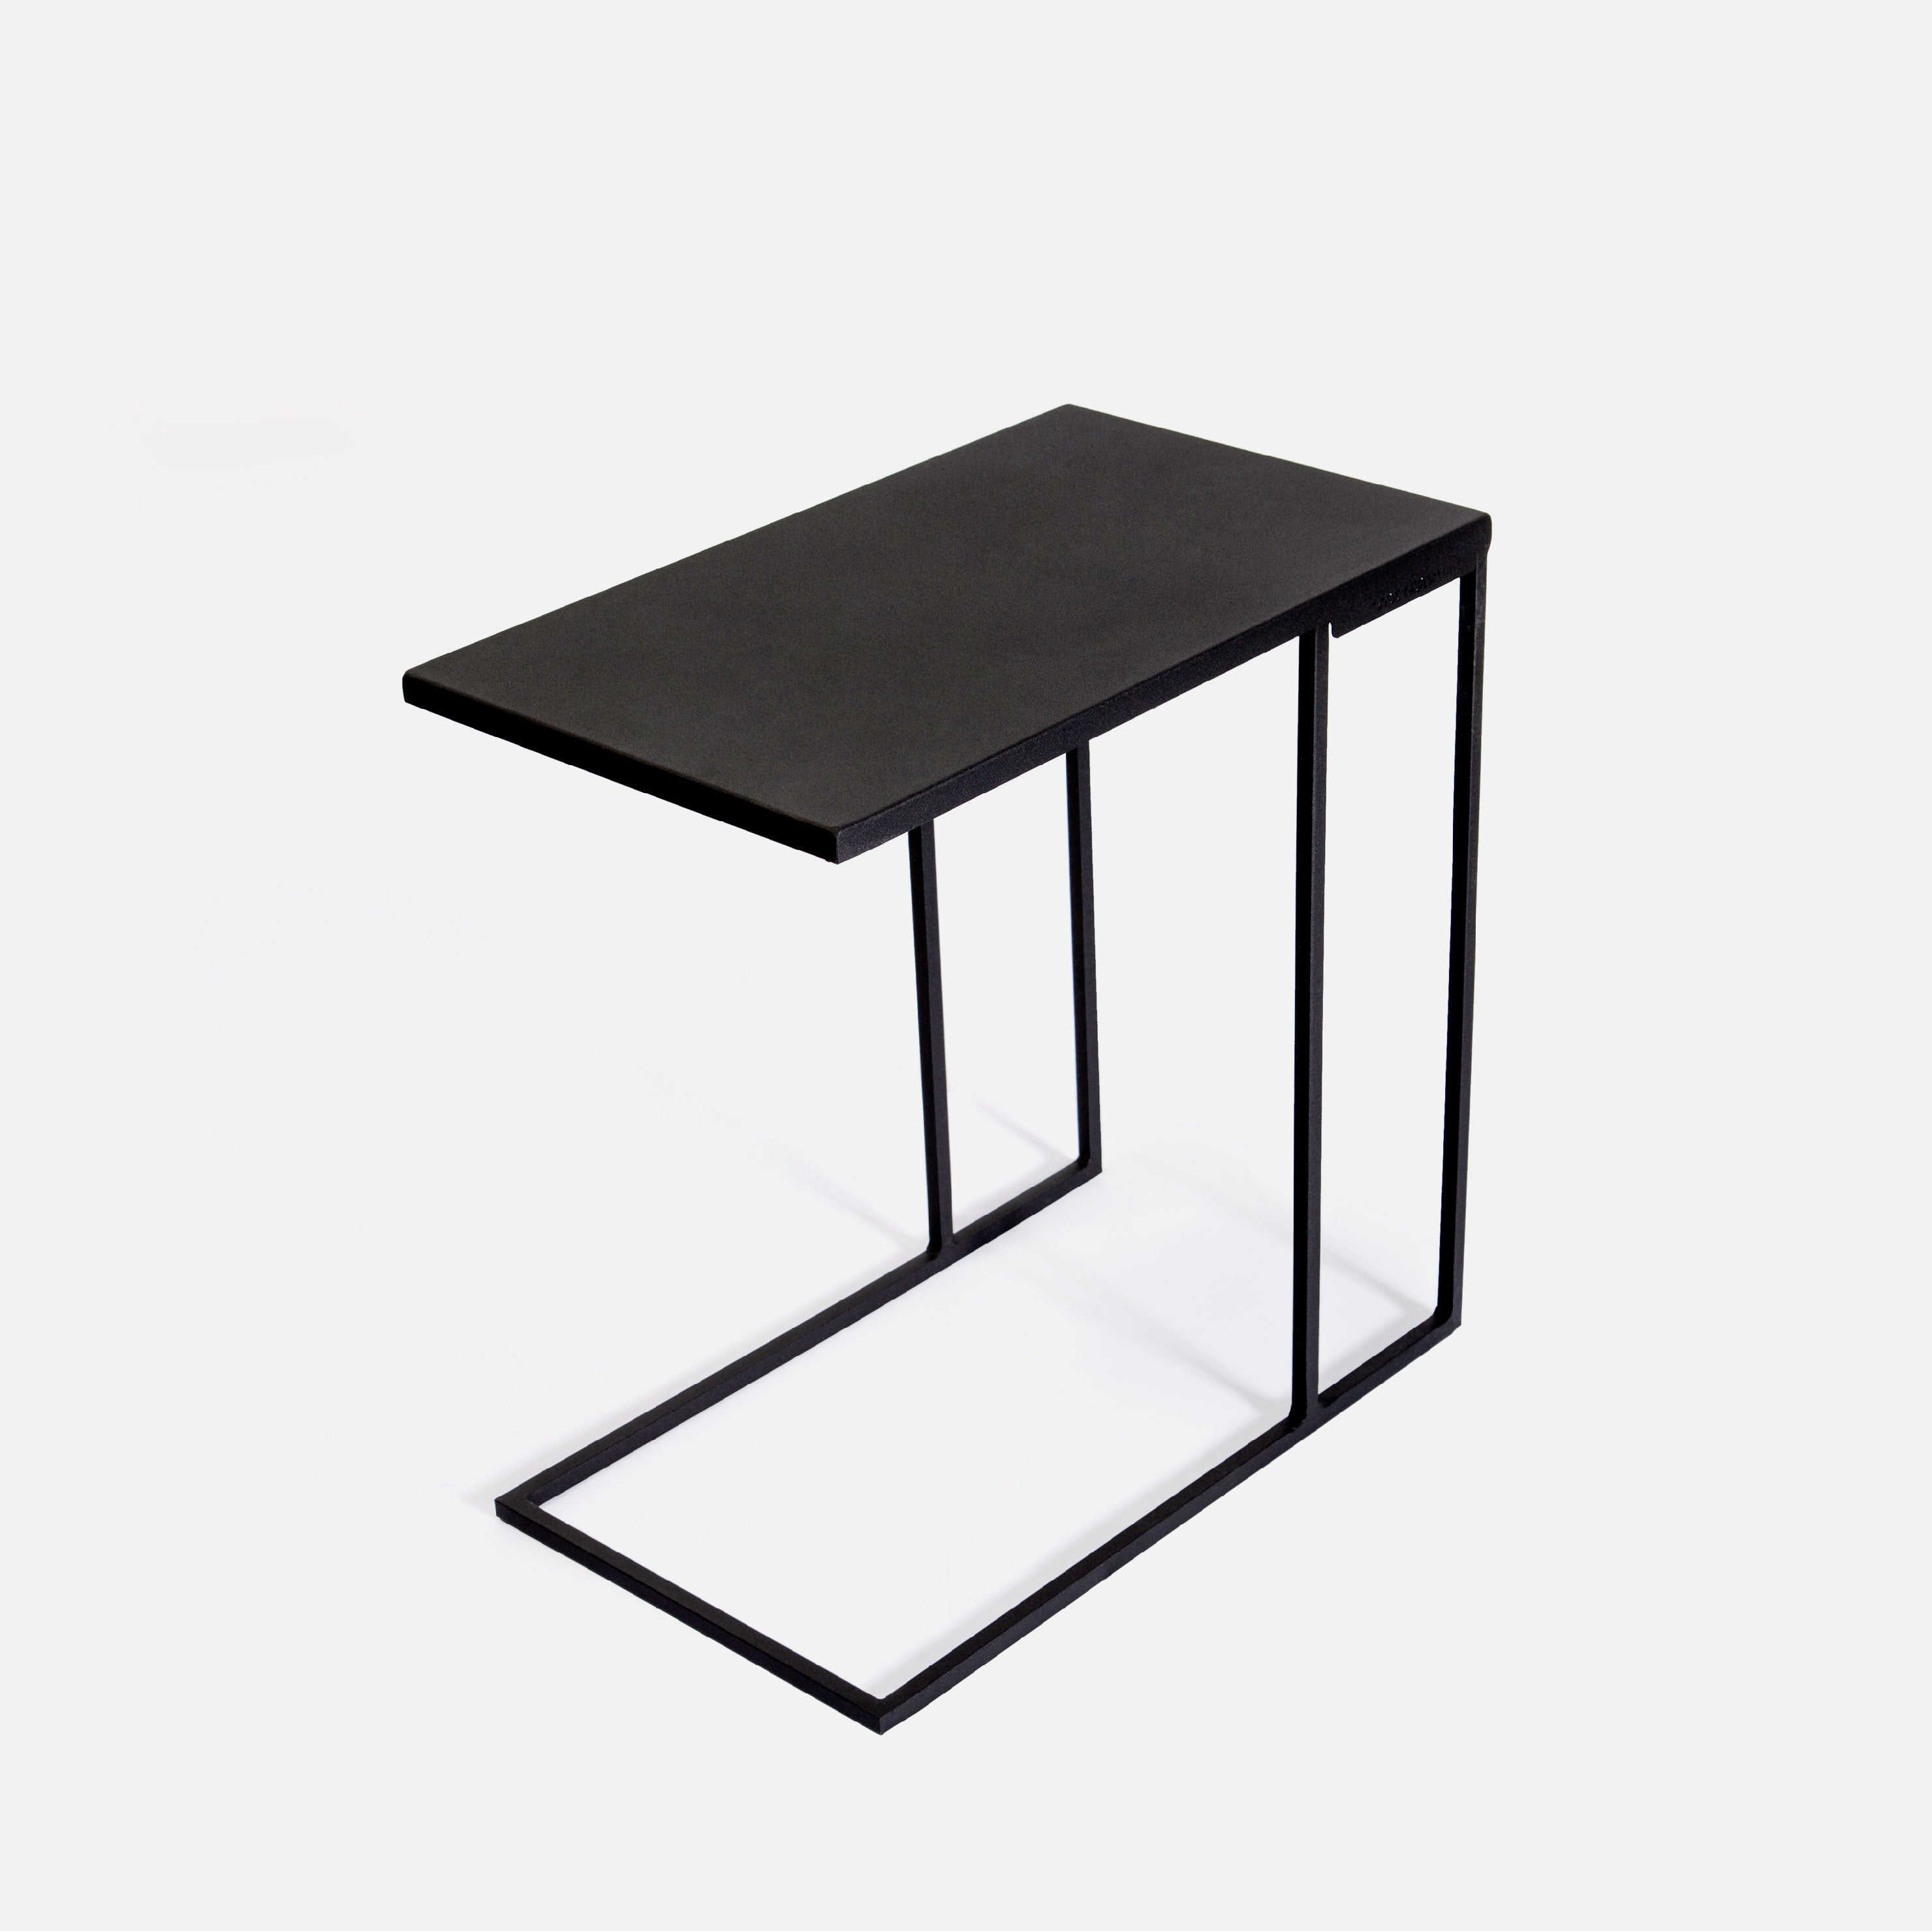 Stockholm Couch Table